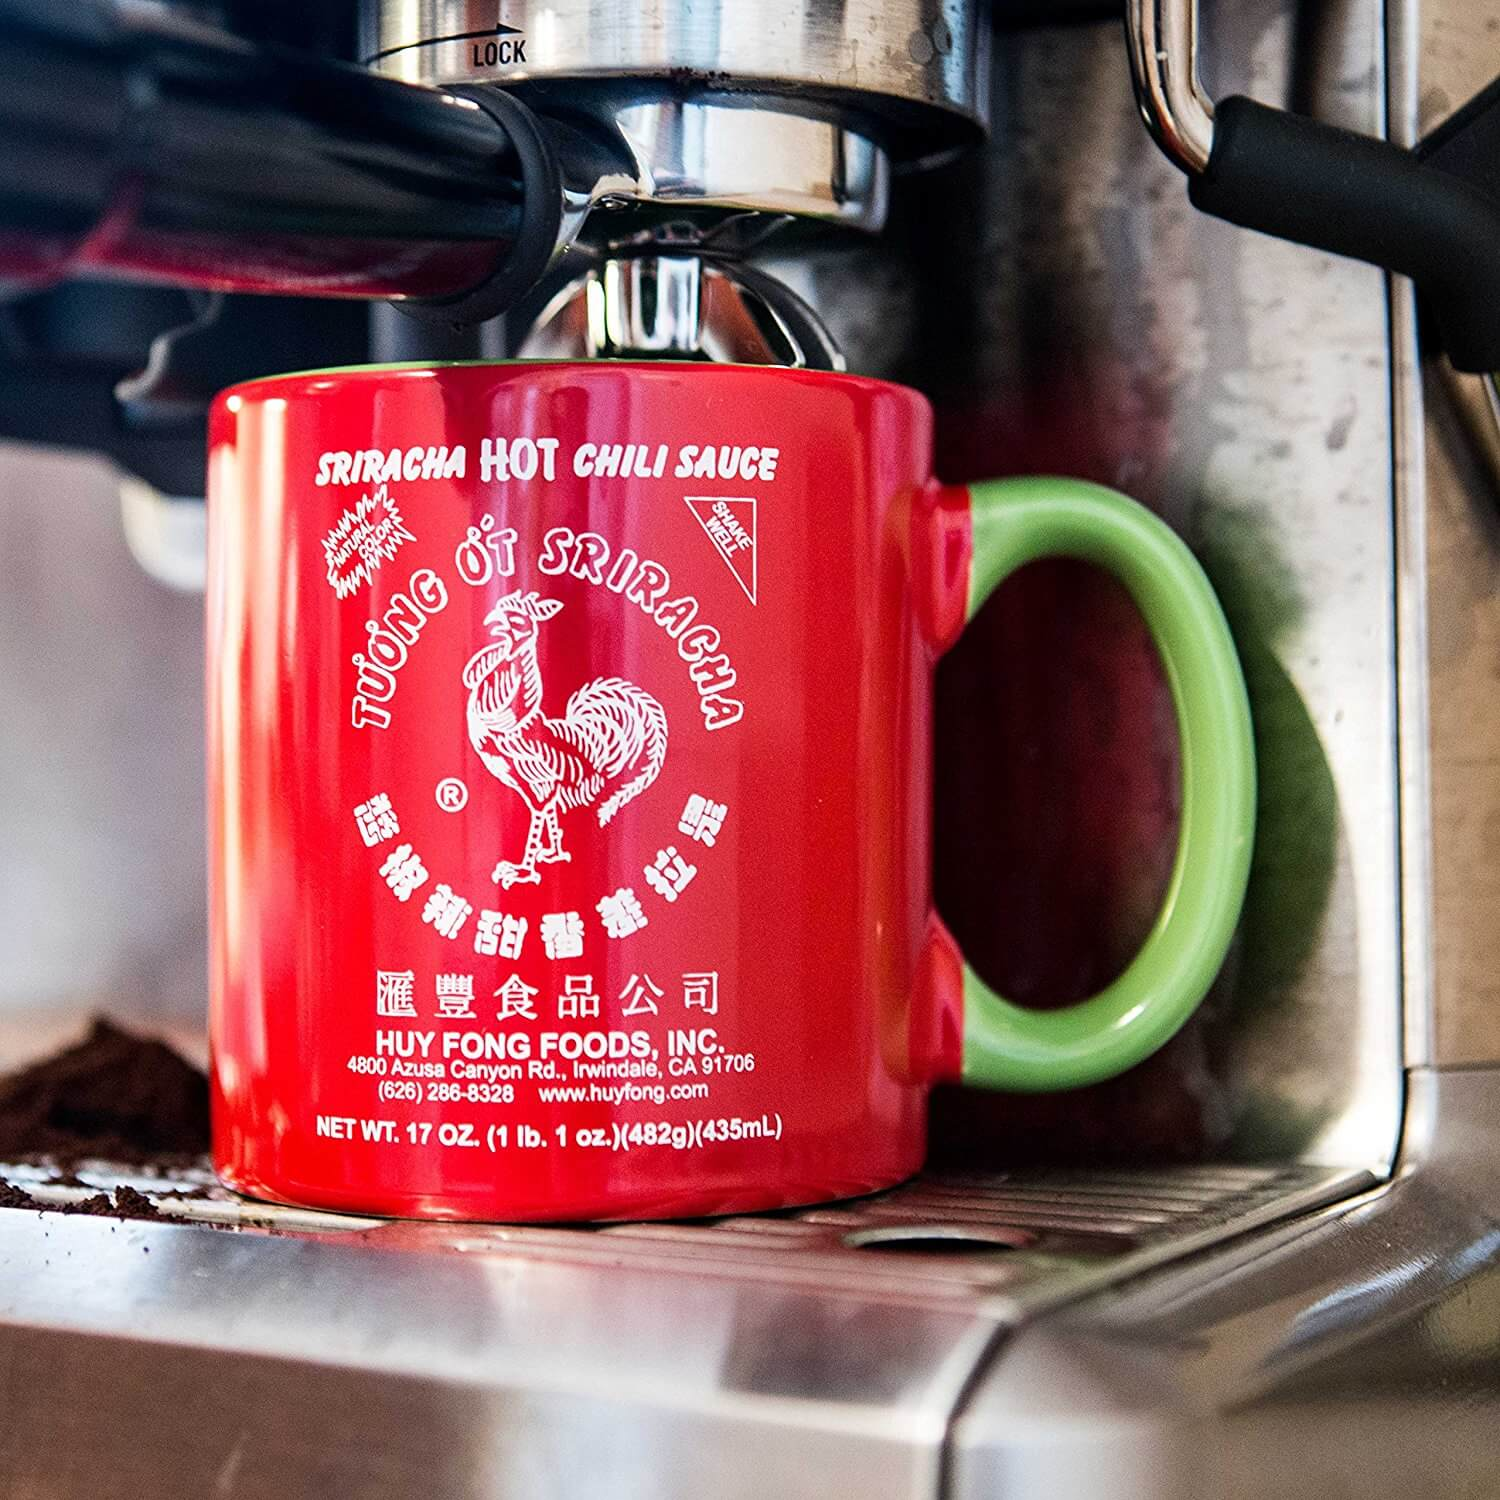 Welcome to The Rooster Room, the official one stop shop for our Sriracha friends!